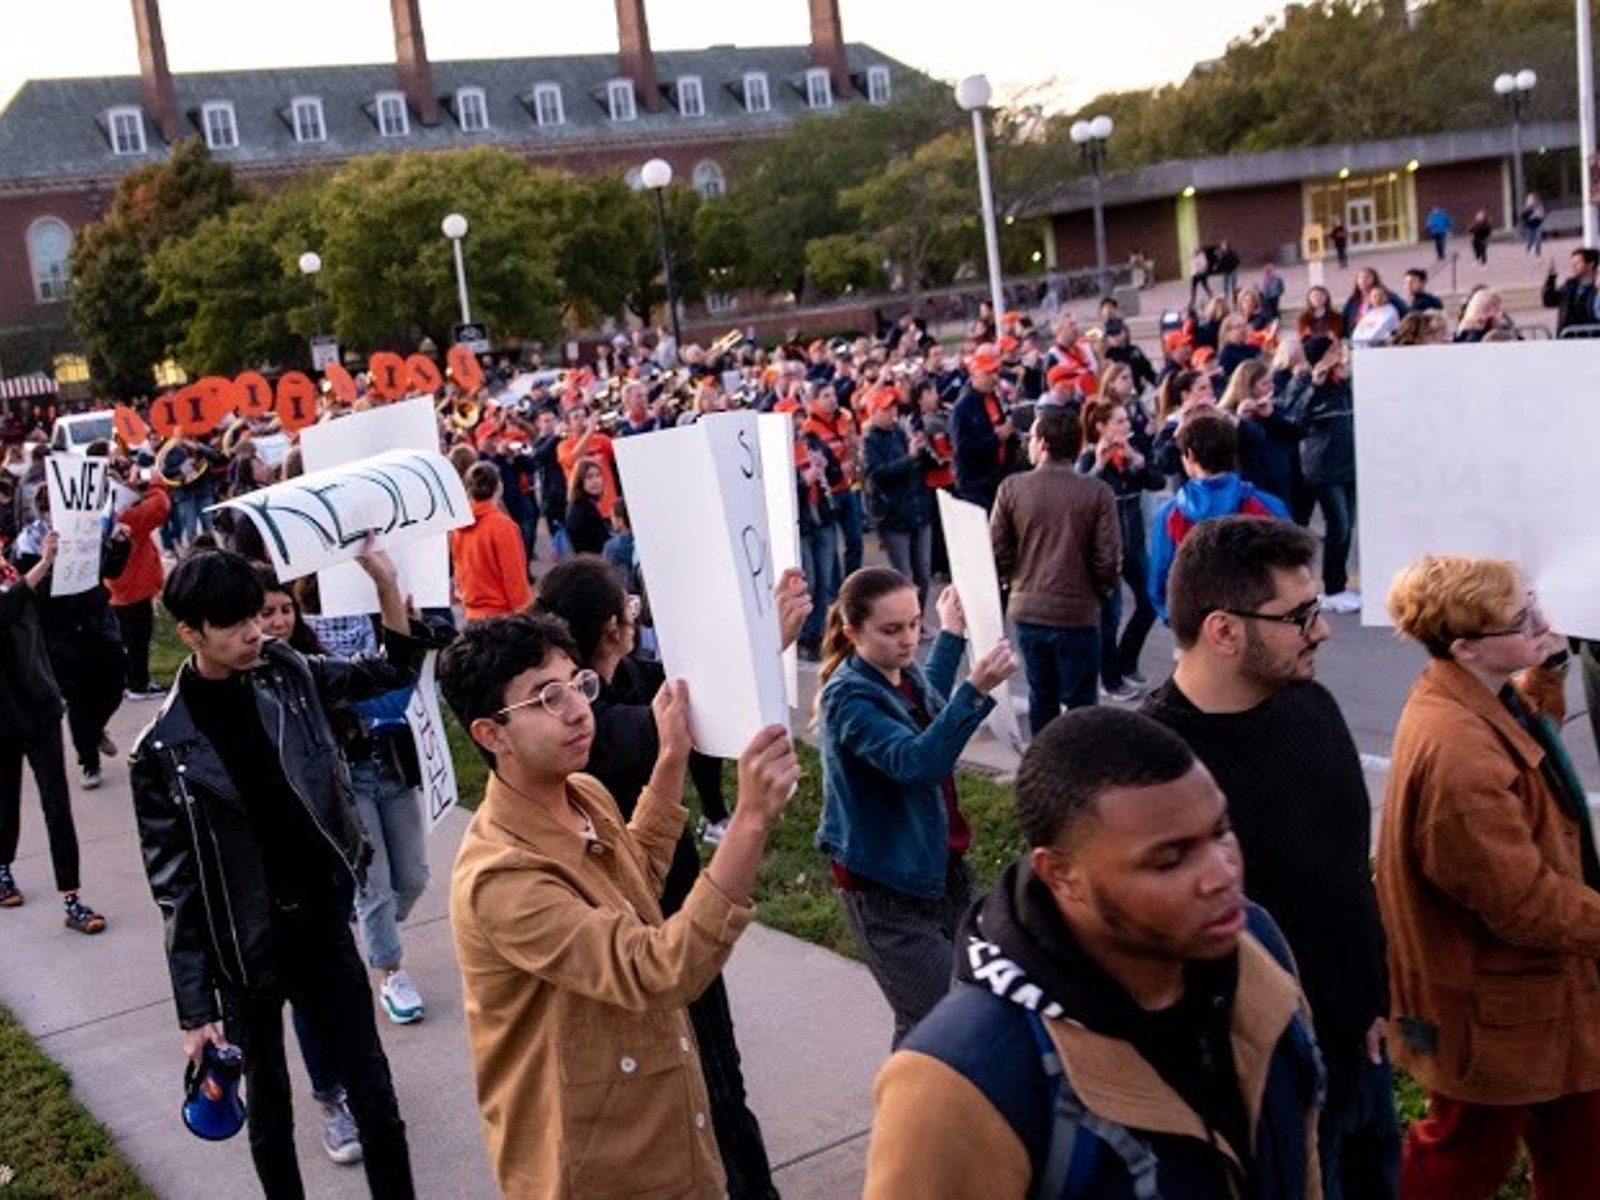 University of Illinois leadership attacks solidarity with Palestine